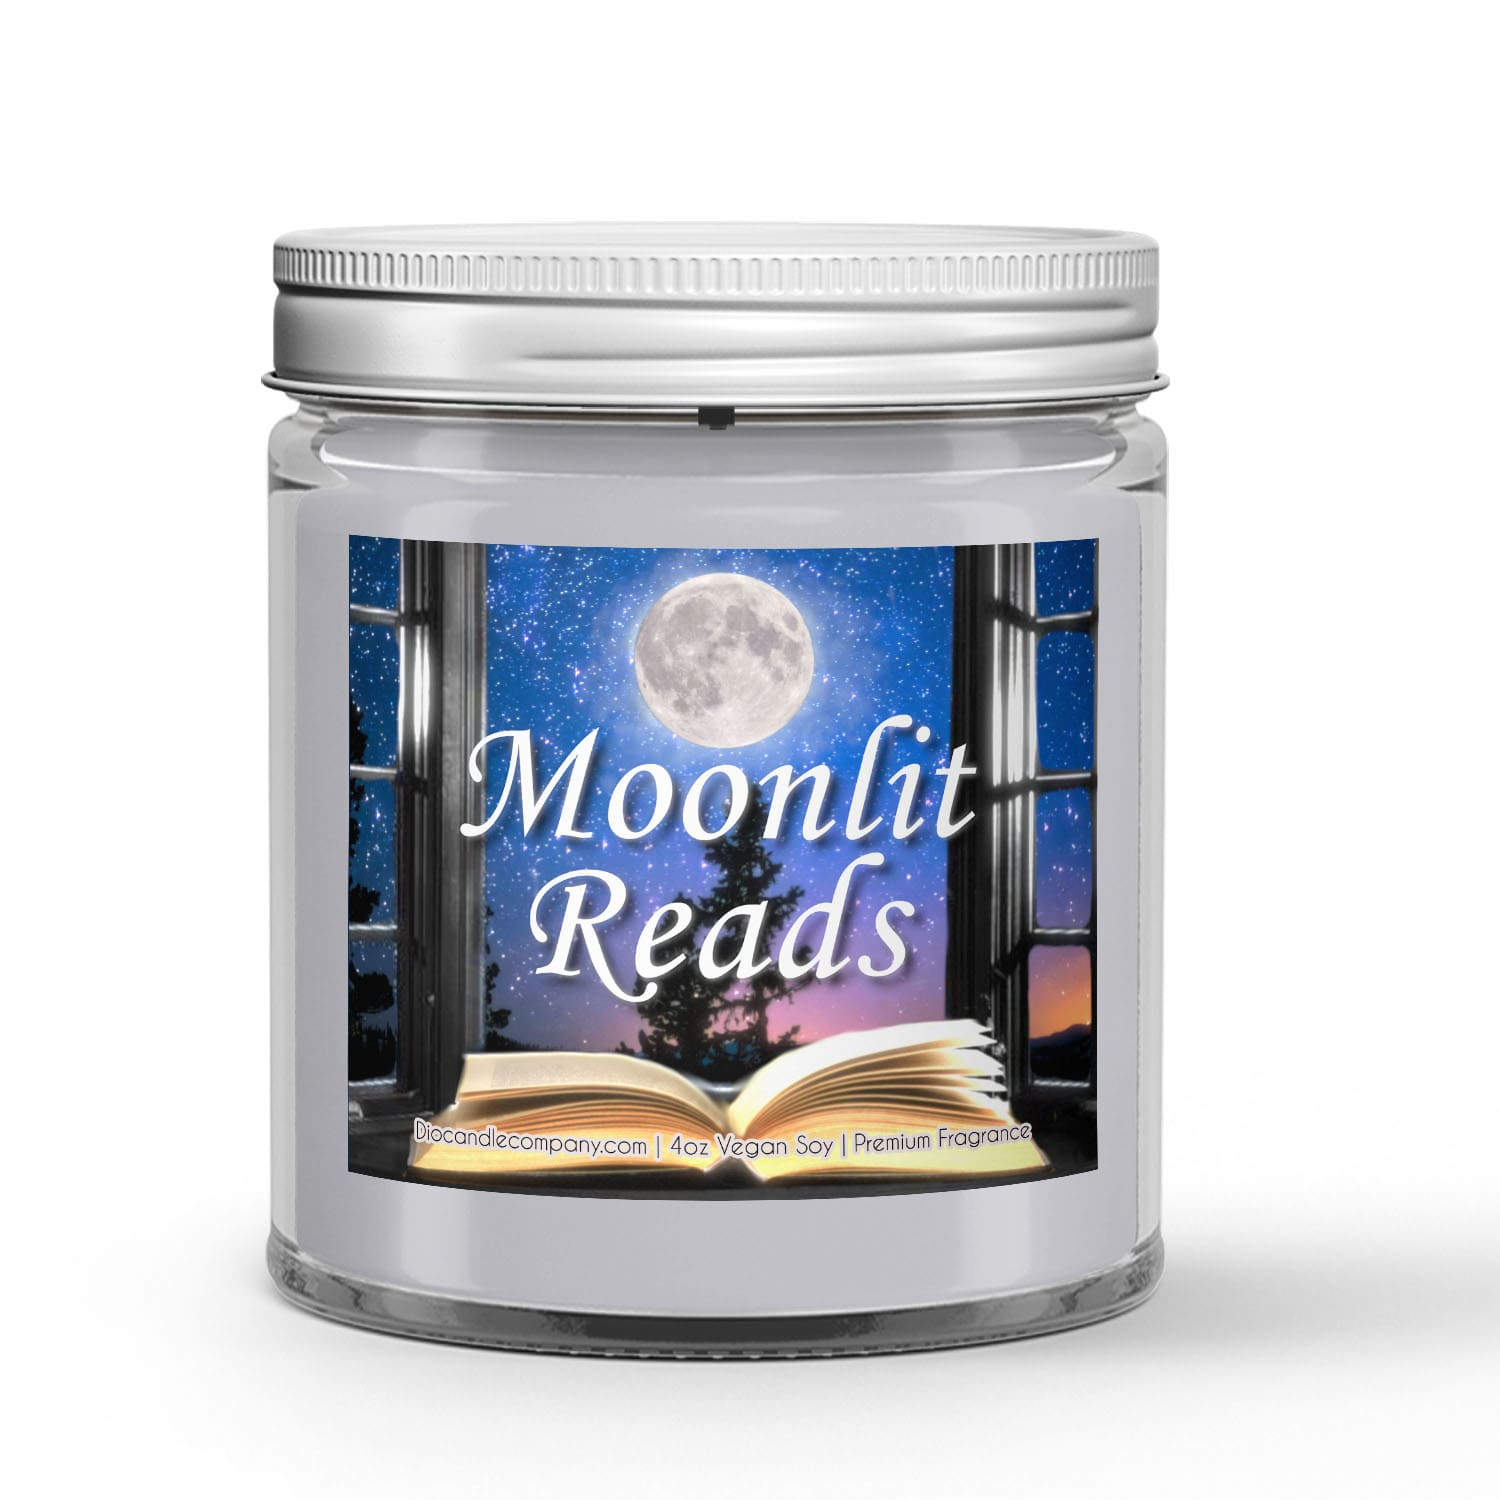 Moonlit Reads Candles and Wax Melts